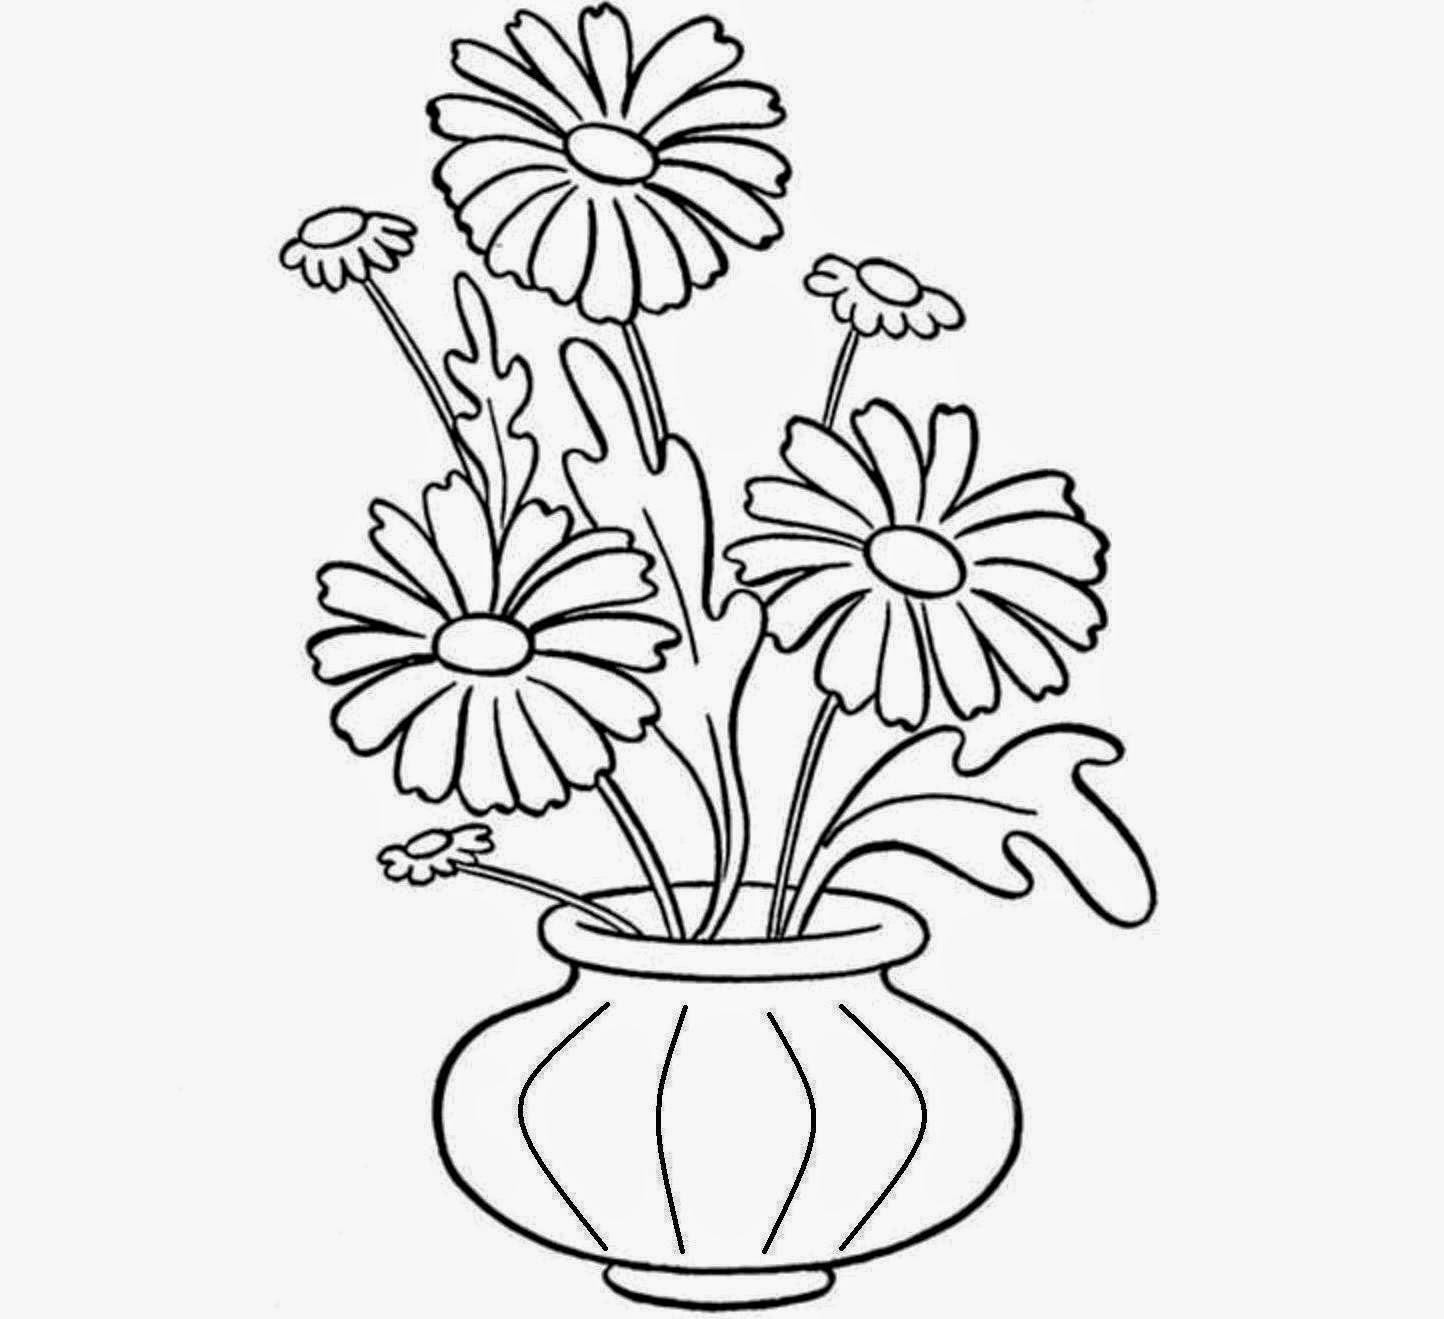 1444x1319 Colour Drawing Free Wallpaper Flowers Vase Coloring Drawing Free